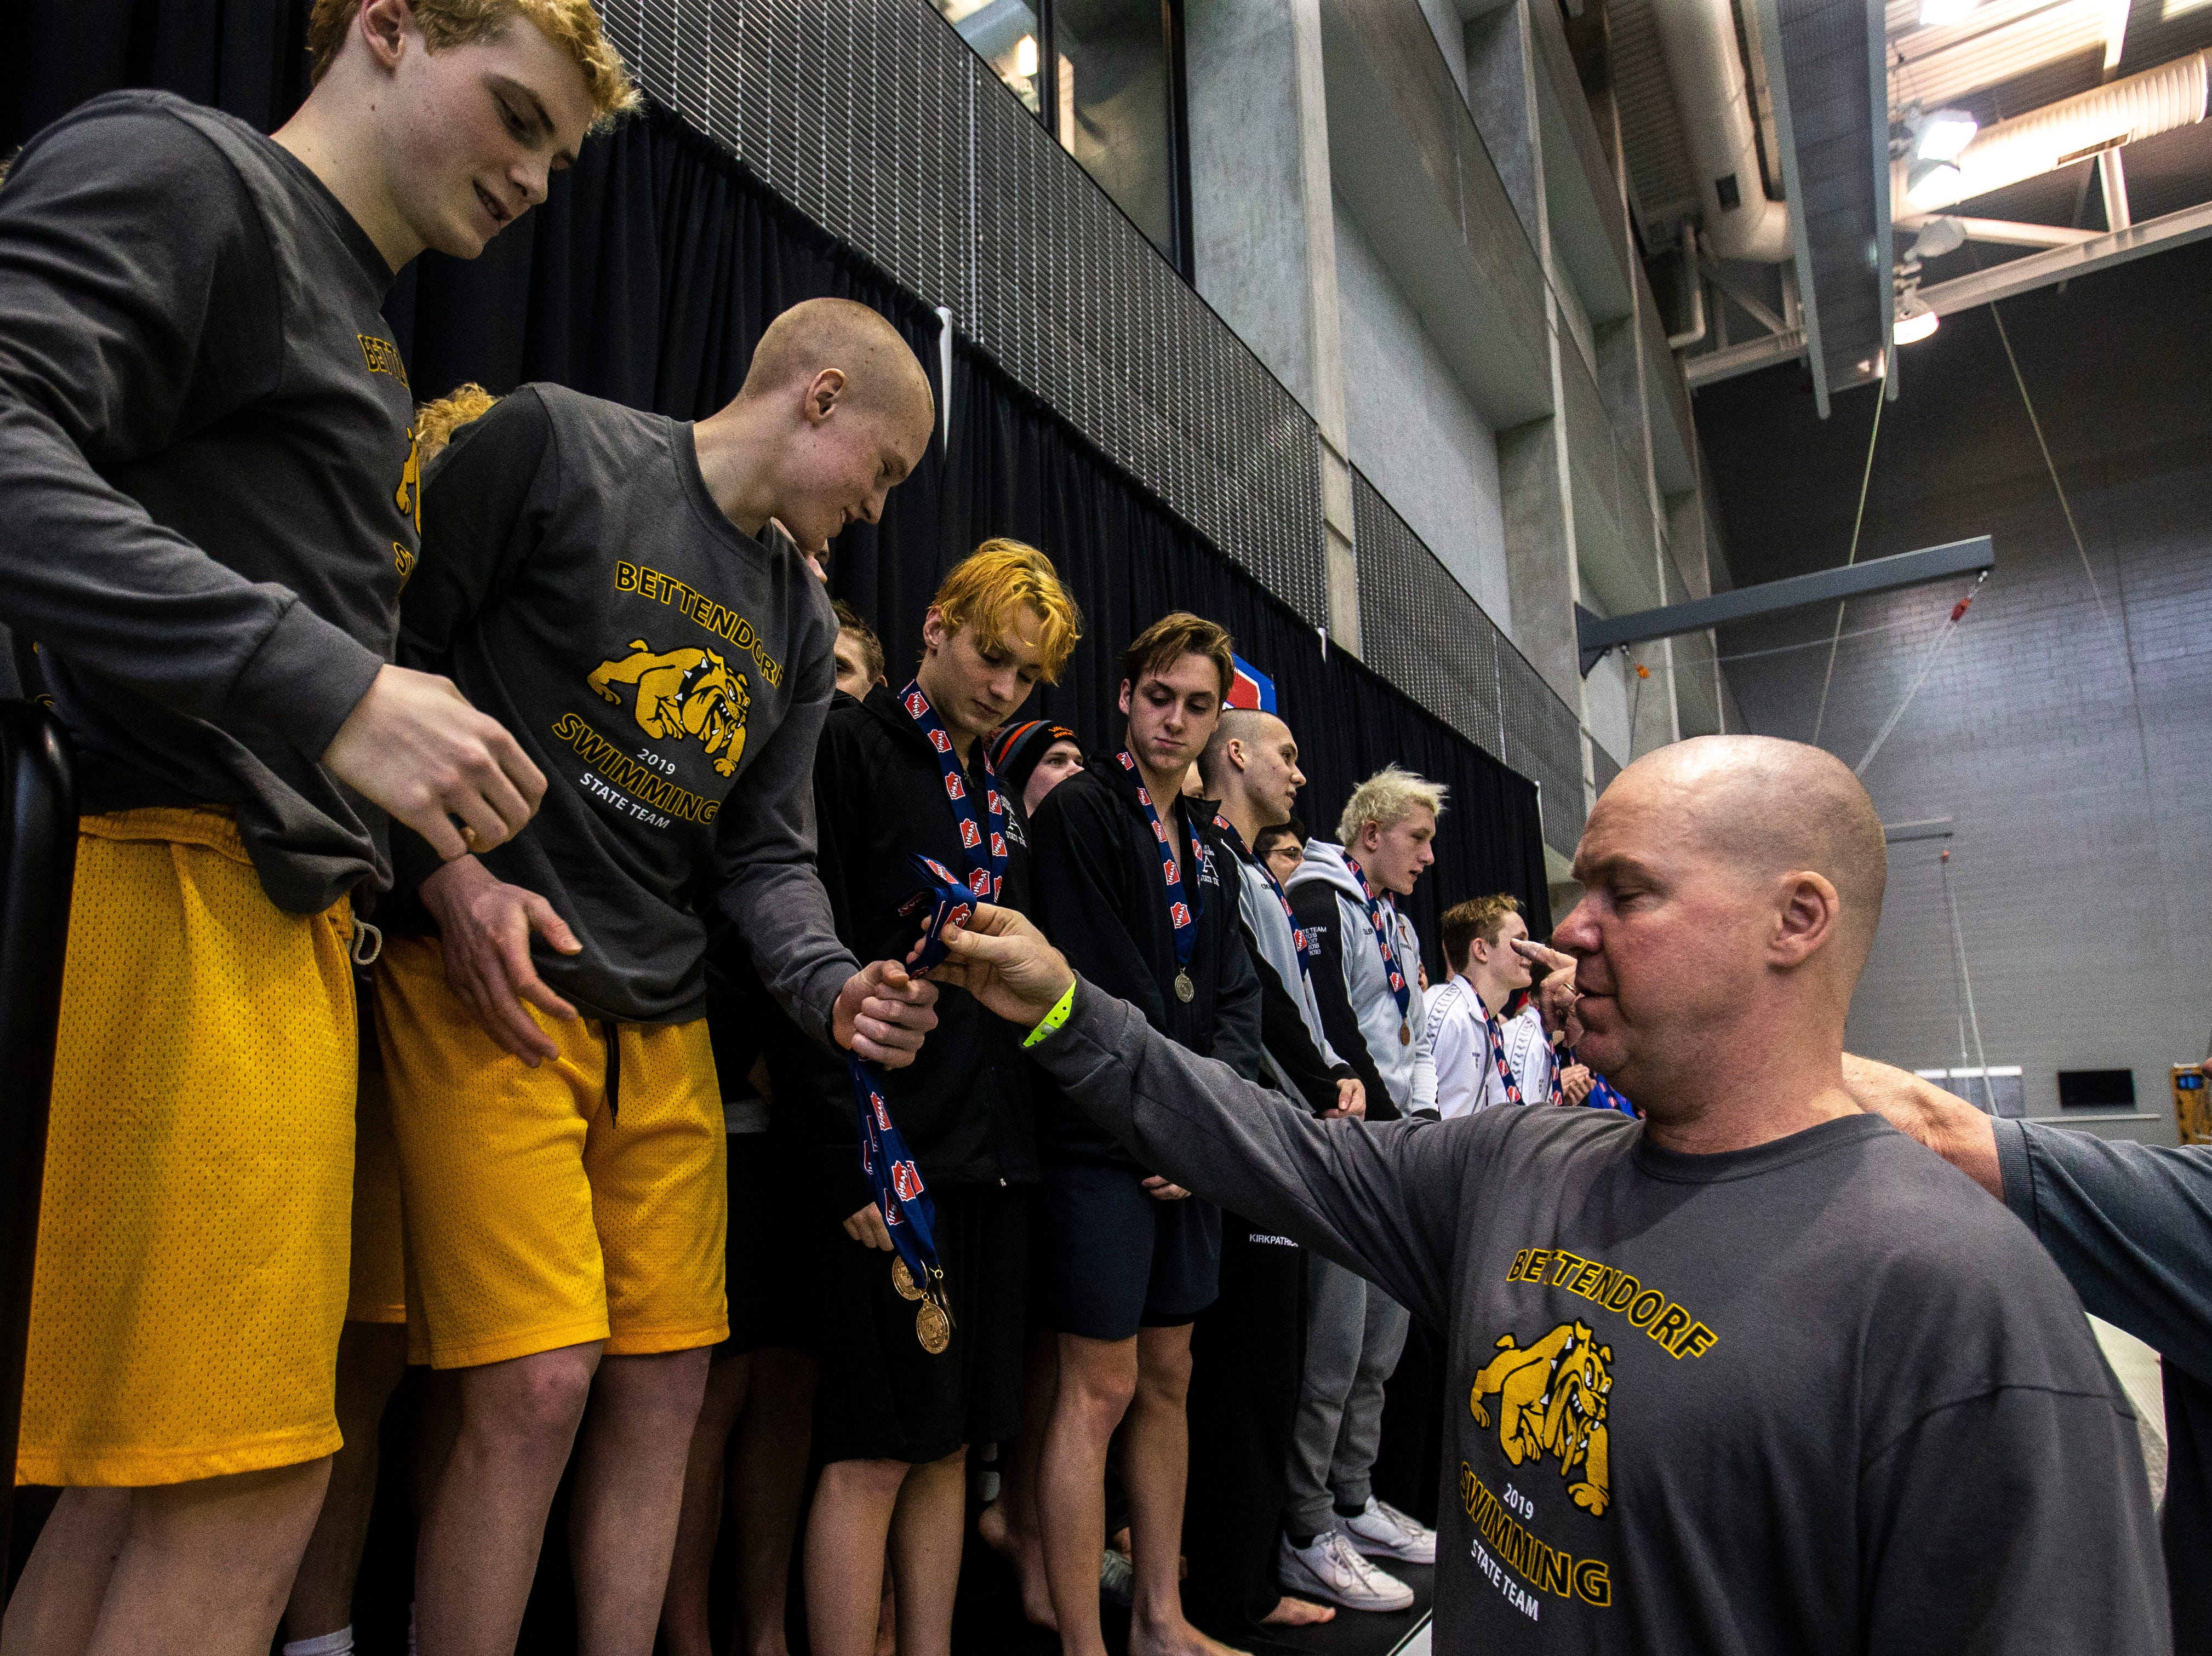 Bettendorf receives their first place medals for the 200 yard freestyle relay during the Iowa boys' state swimming regional championship meet on Saturday, Feb. 9, 2019 at Campus Recreation and Wellness Center on the University of Iowa campus in Iowa City, Iowa. Bettendorf finished first overall, with a time of 1:23.56.